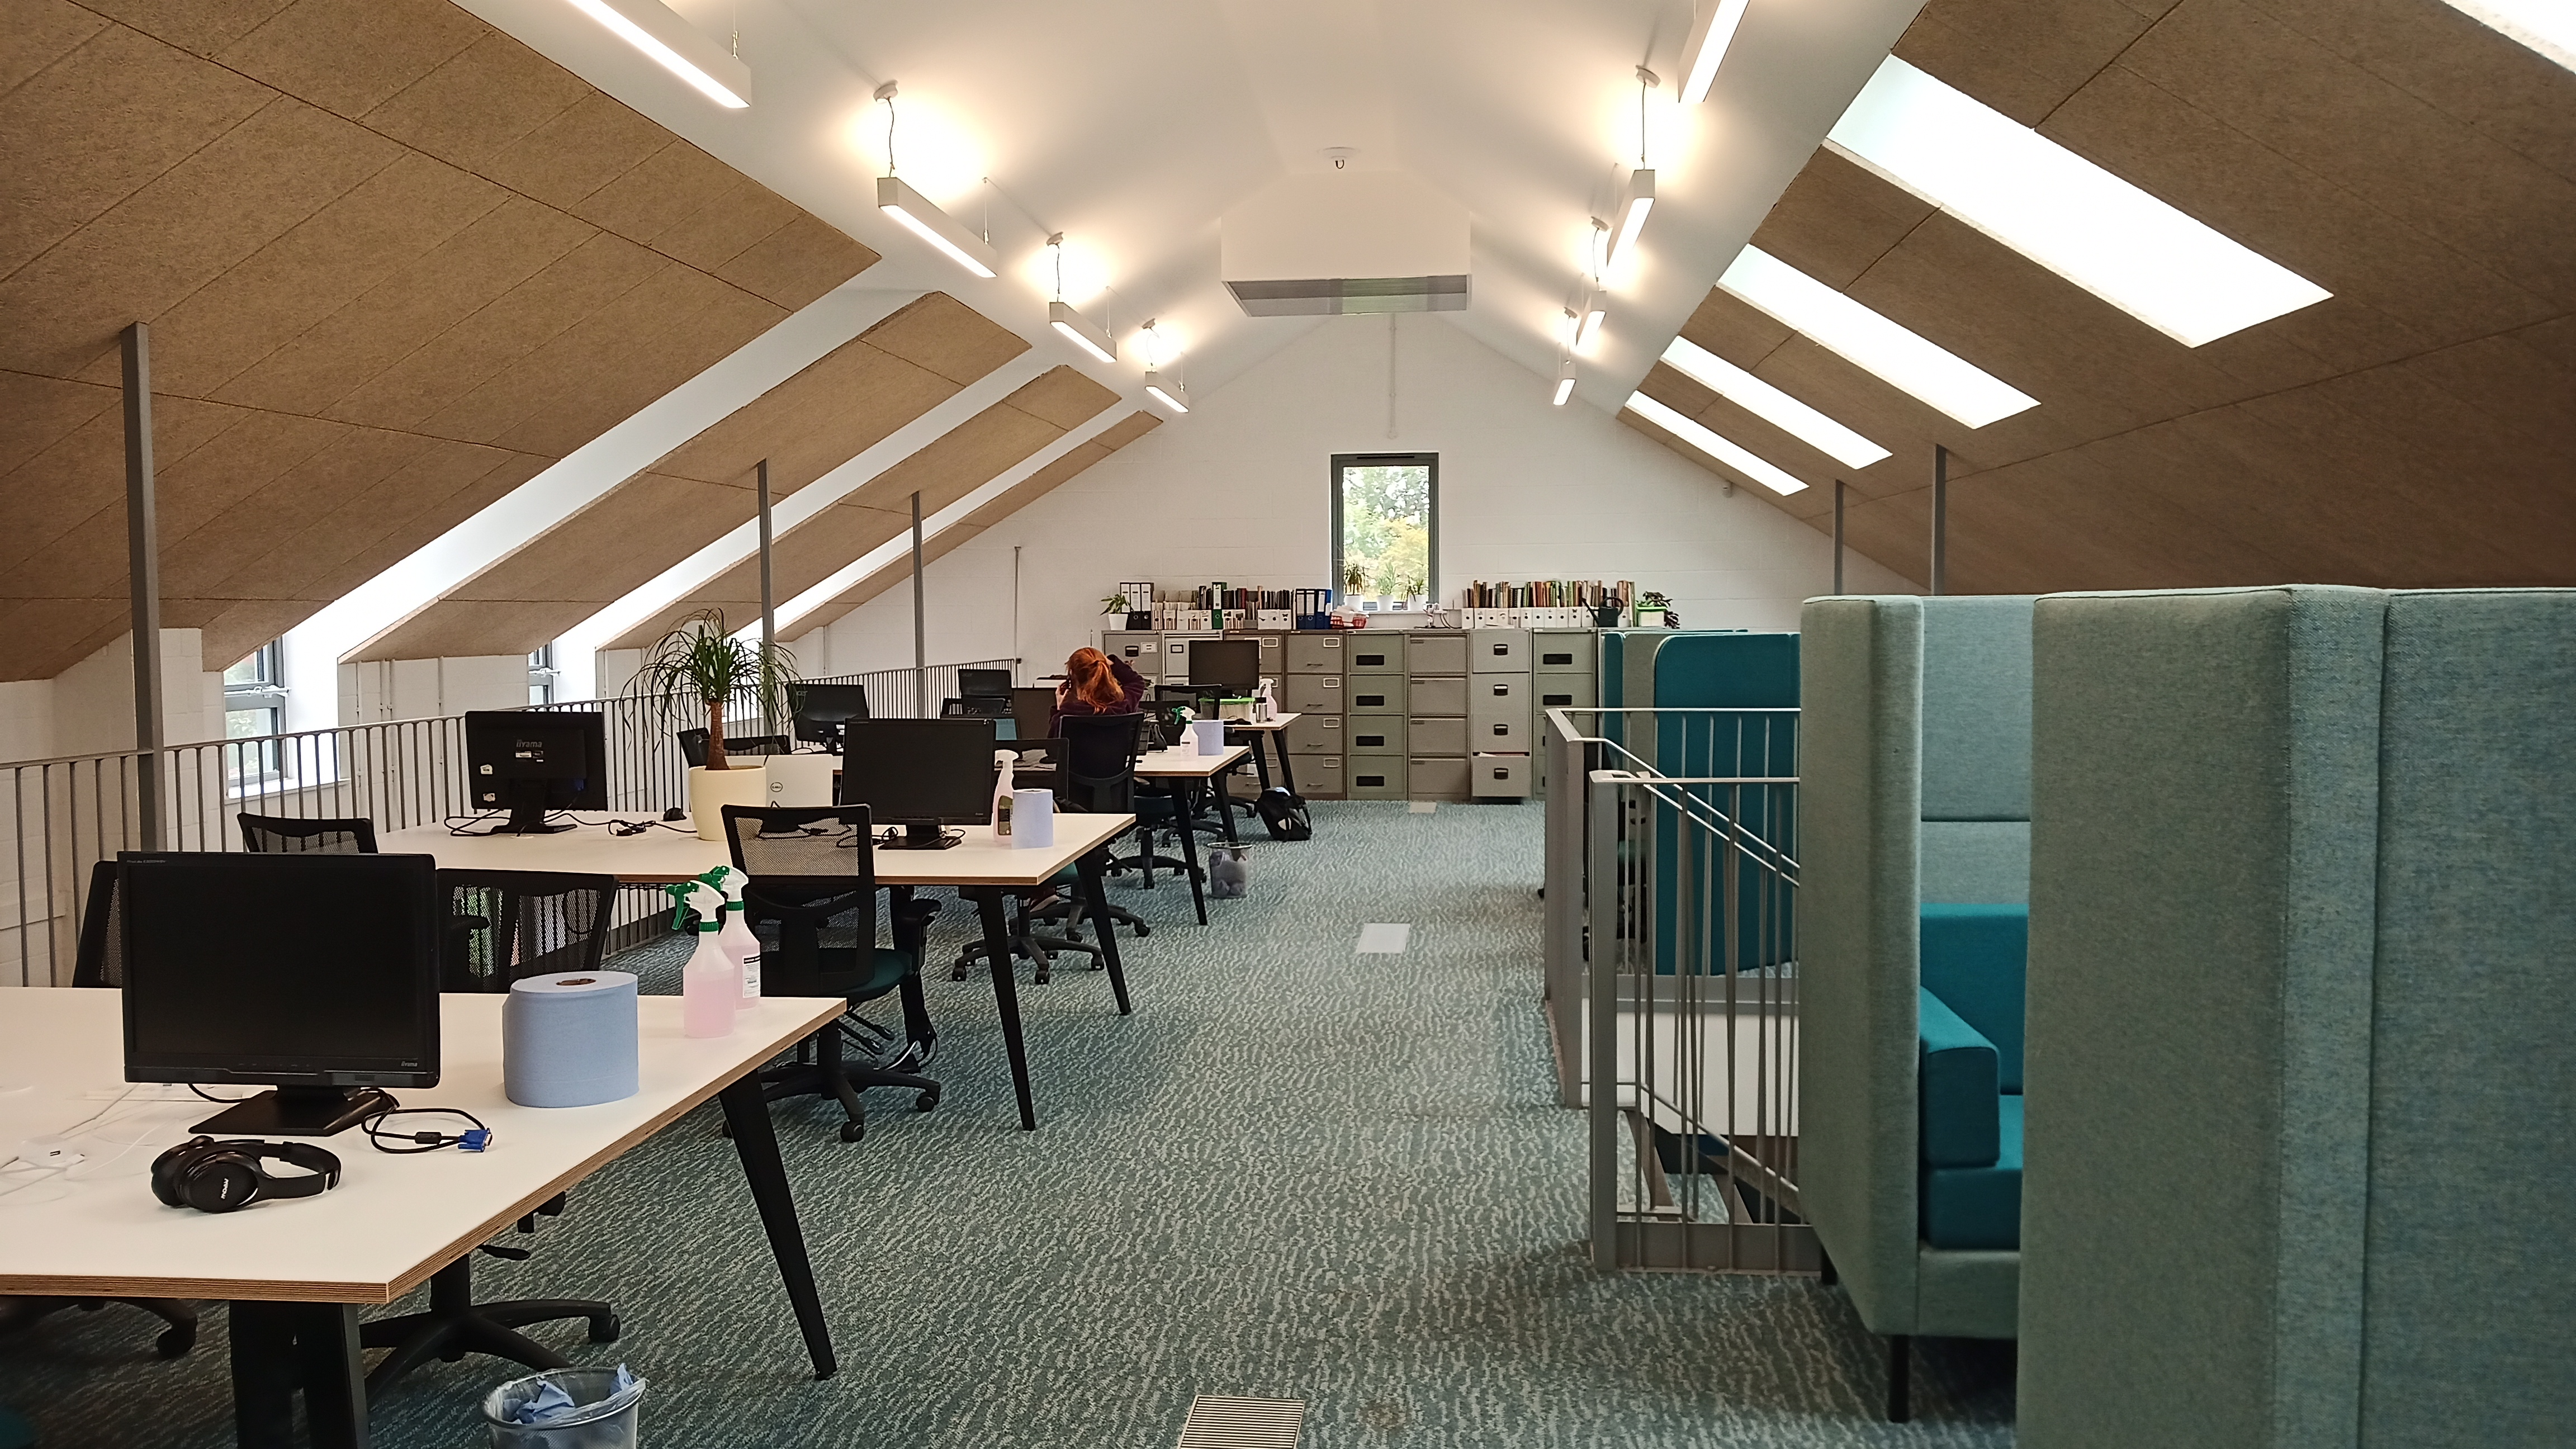 Newly refurbished mezzanine office at Robinswood Hill Country Park